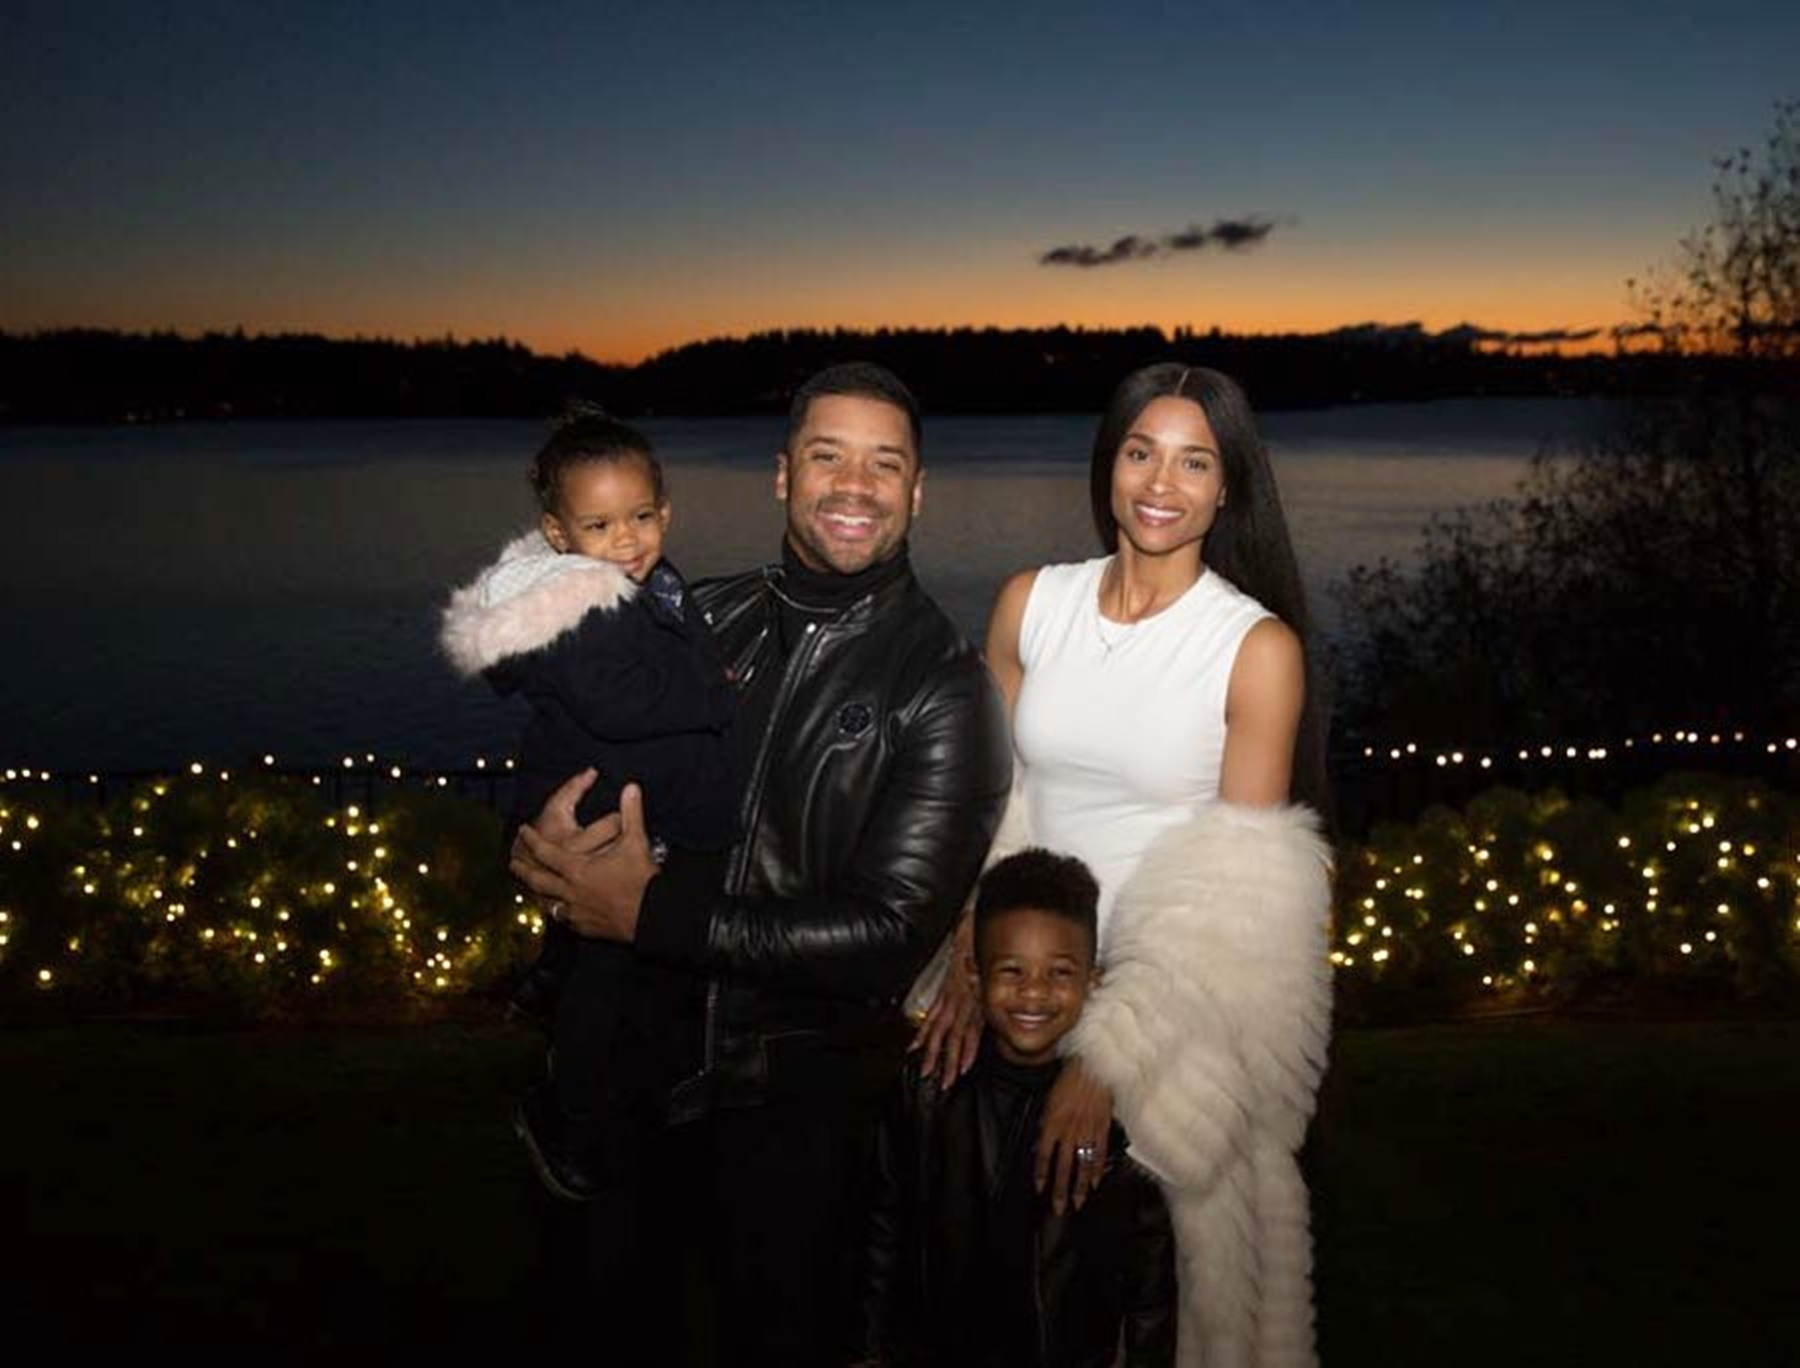 """ciara-touches-fans-in-a-meaningful-way-with-message-to-russell-wilson-tiny-harris-and-tamar-braxton-are-also-there-for-the-couples-big-milestone"""